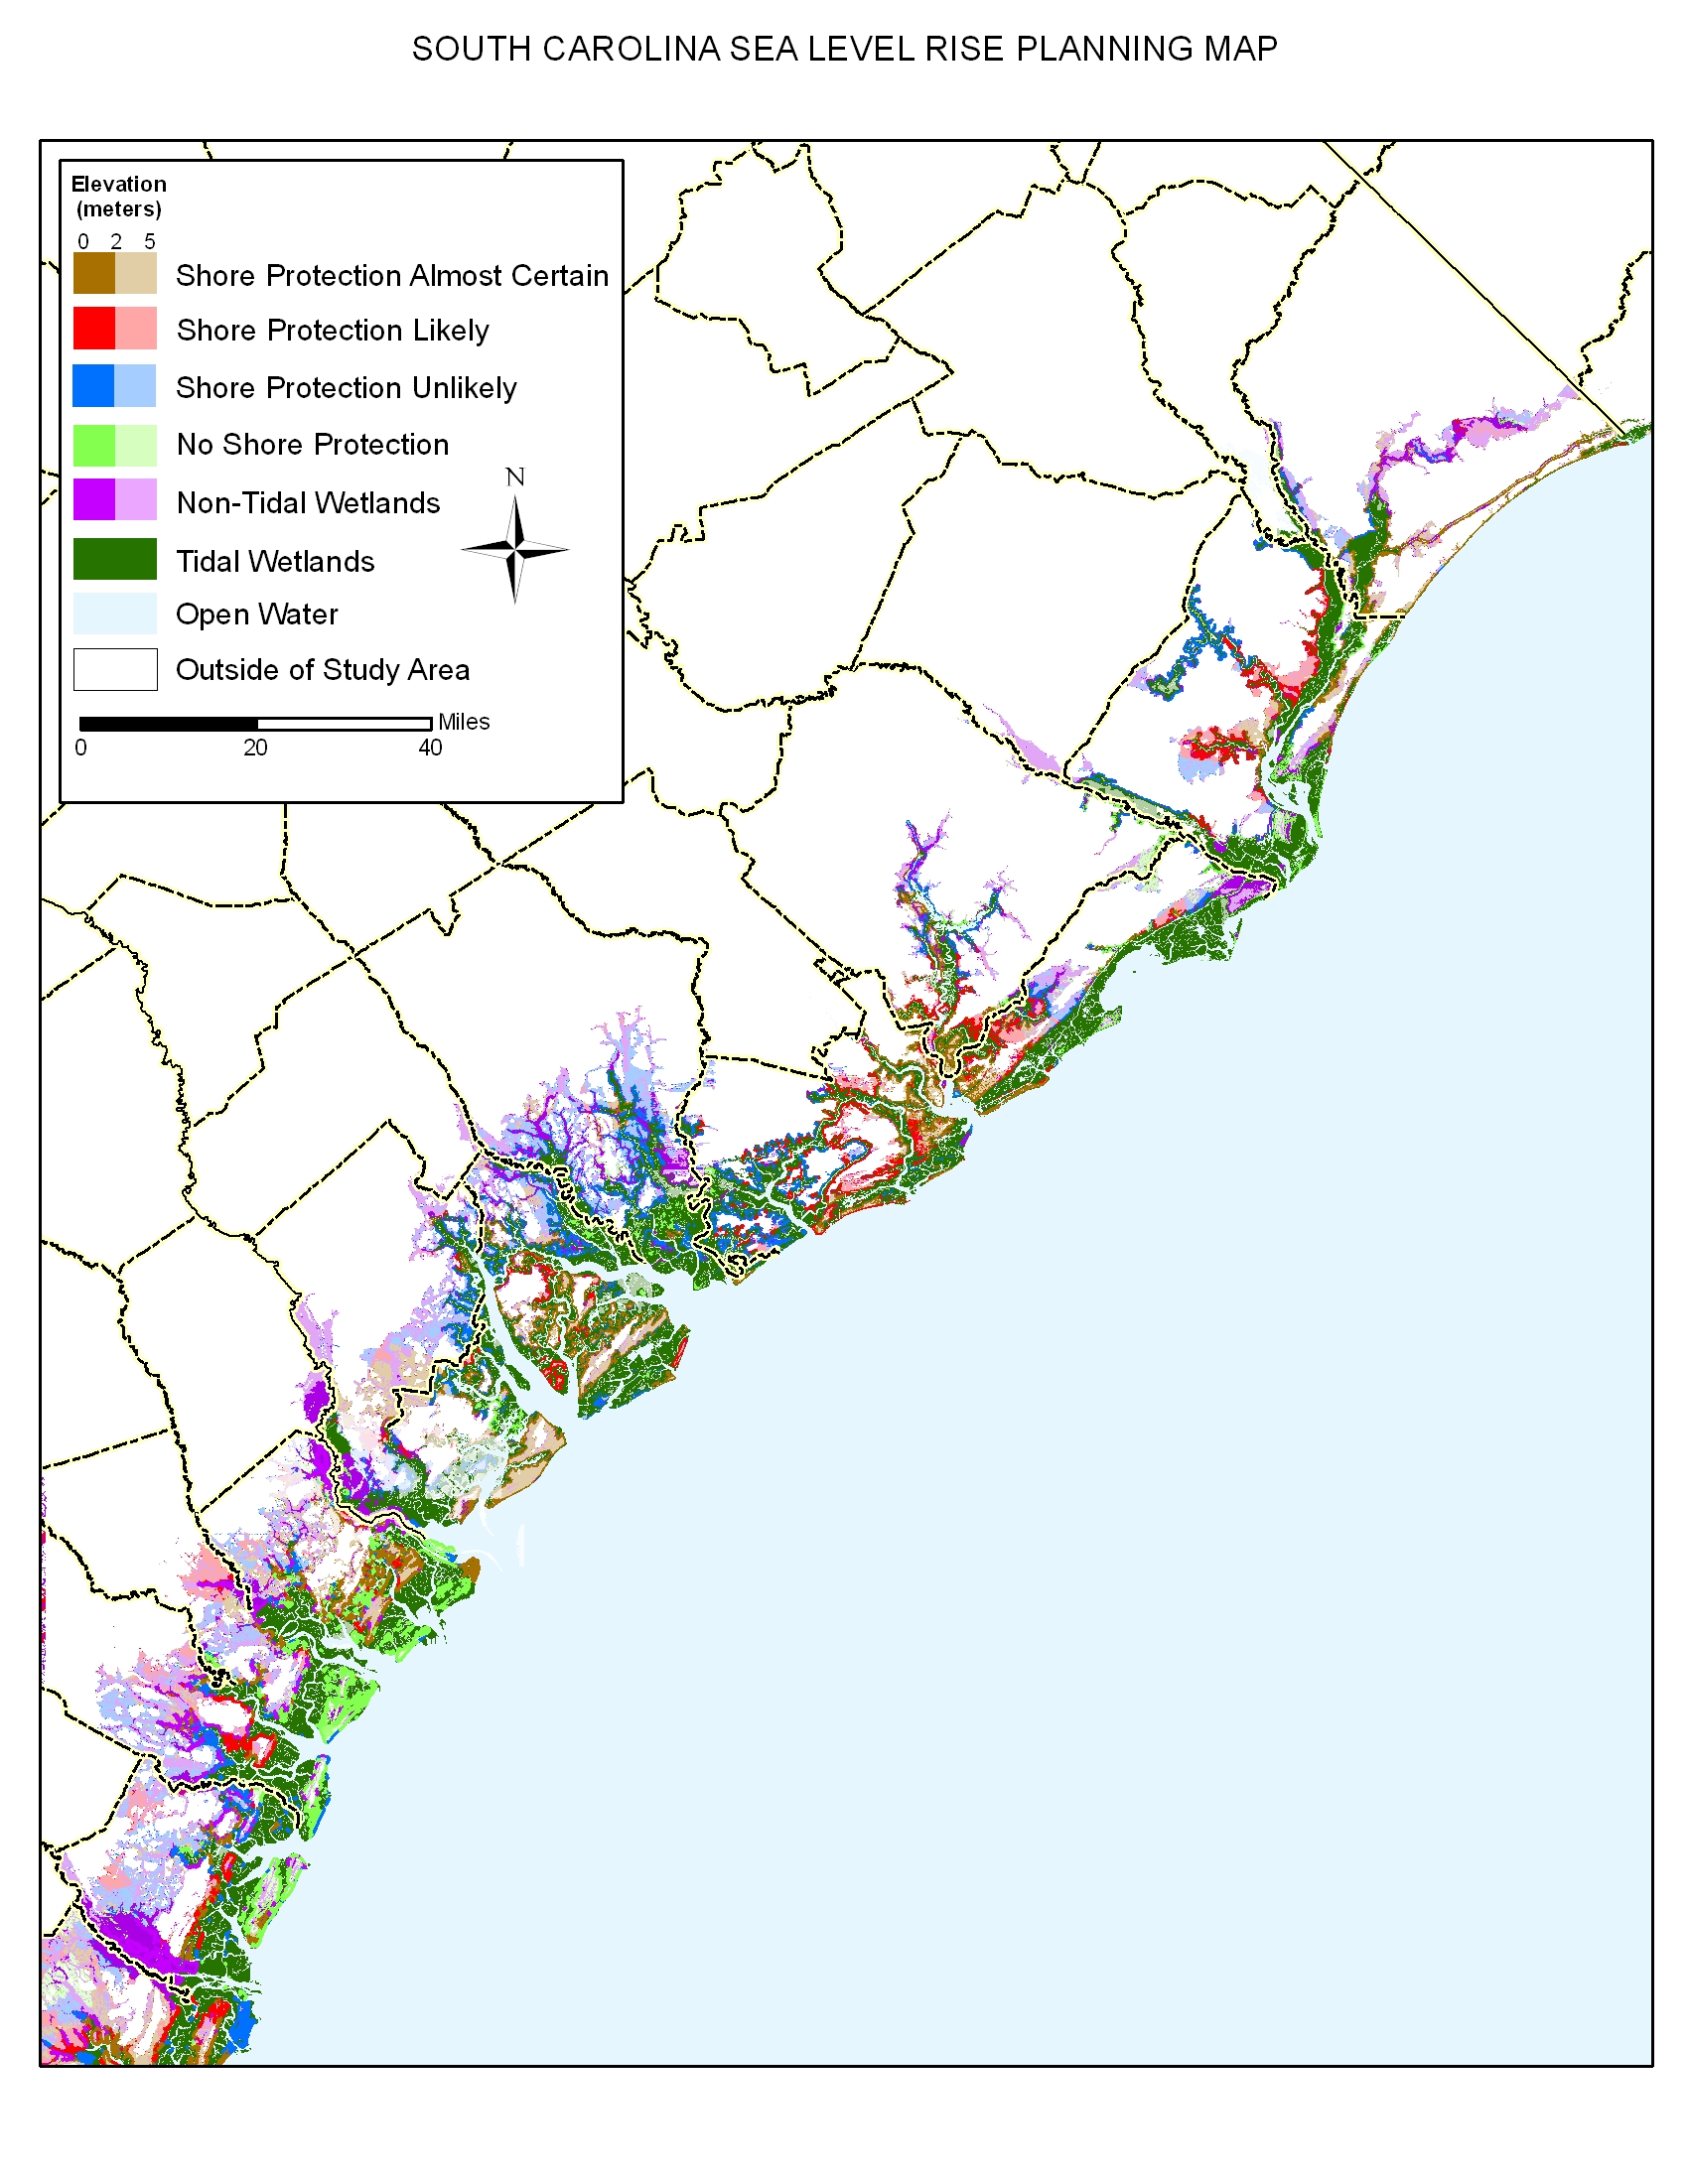 Sea Level Rise Planning Maps Likelihood Of Shore Protection In - Map of sc coast